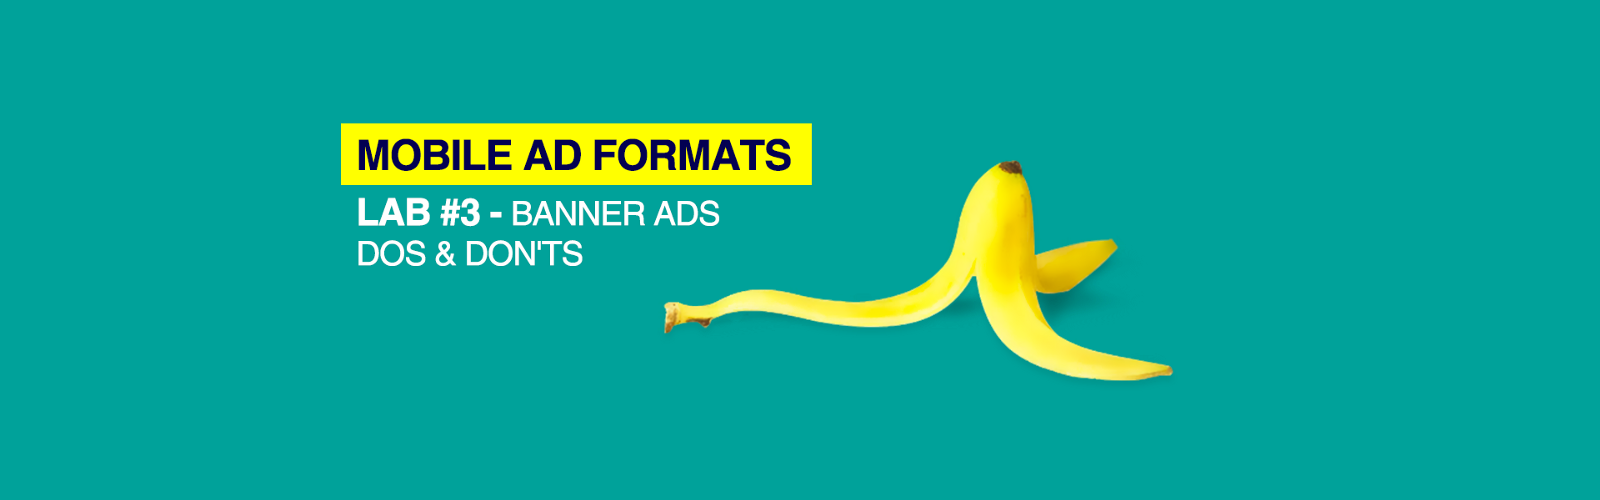 mobile ad formats lab 3 banner ads dos and don ts